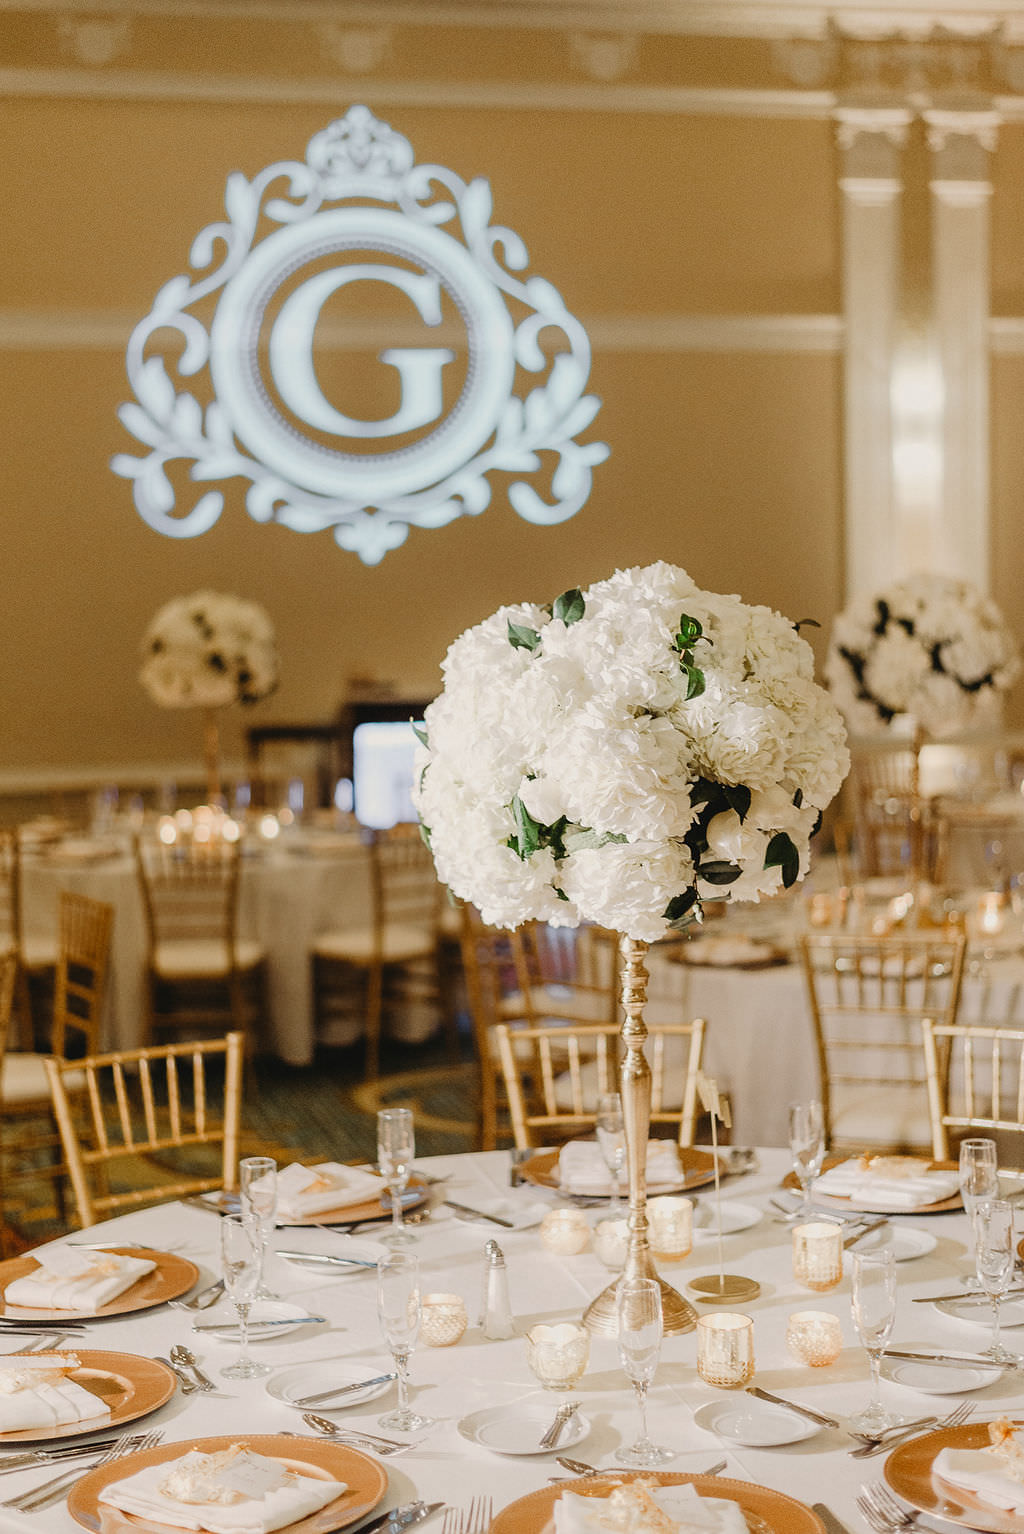 Traditional Classic Ballroom Wedding Reception Decor, Round Tables with White Tablecloths, Gold Chargers, Tall Gold Vase with Round White Floral Centerpiece, Custom Gobo Monogram Projection   St. Pete Hotel Ballroom Wedding Venue The Vinoy Renaissance